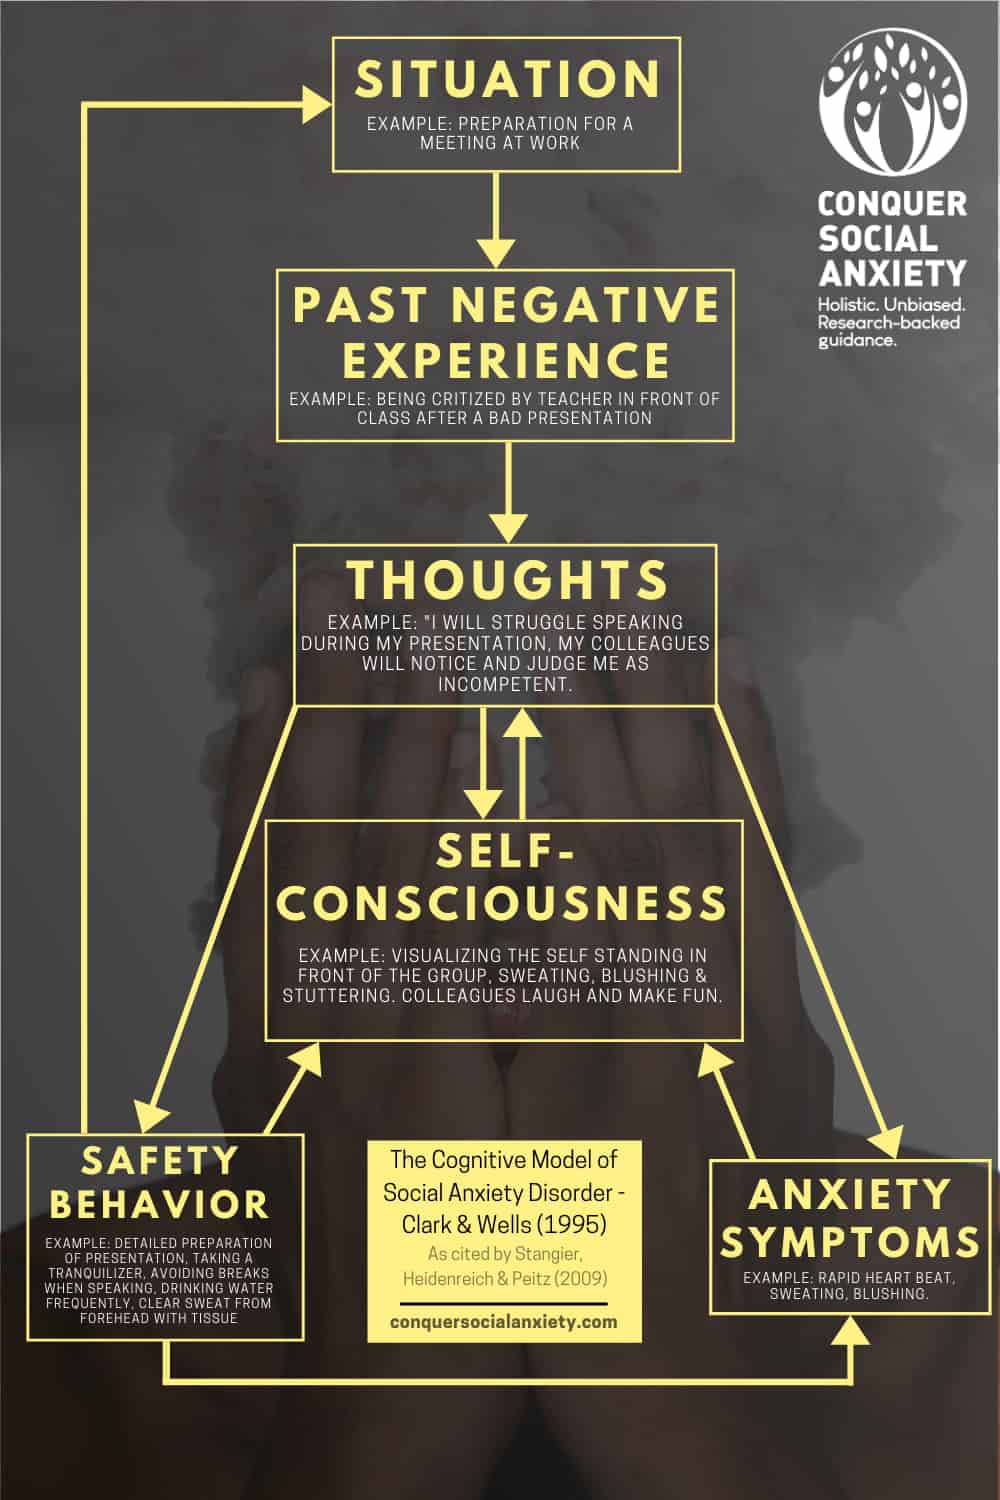 Cognitive behavioral therapy aims to alter negative beliefs and assumptions, and targets maladaptive attentional processes and behavior patterns.